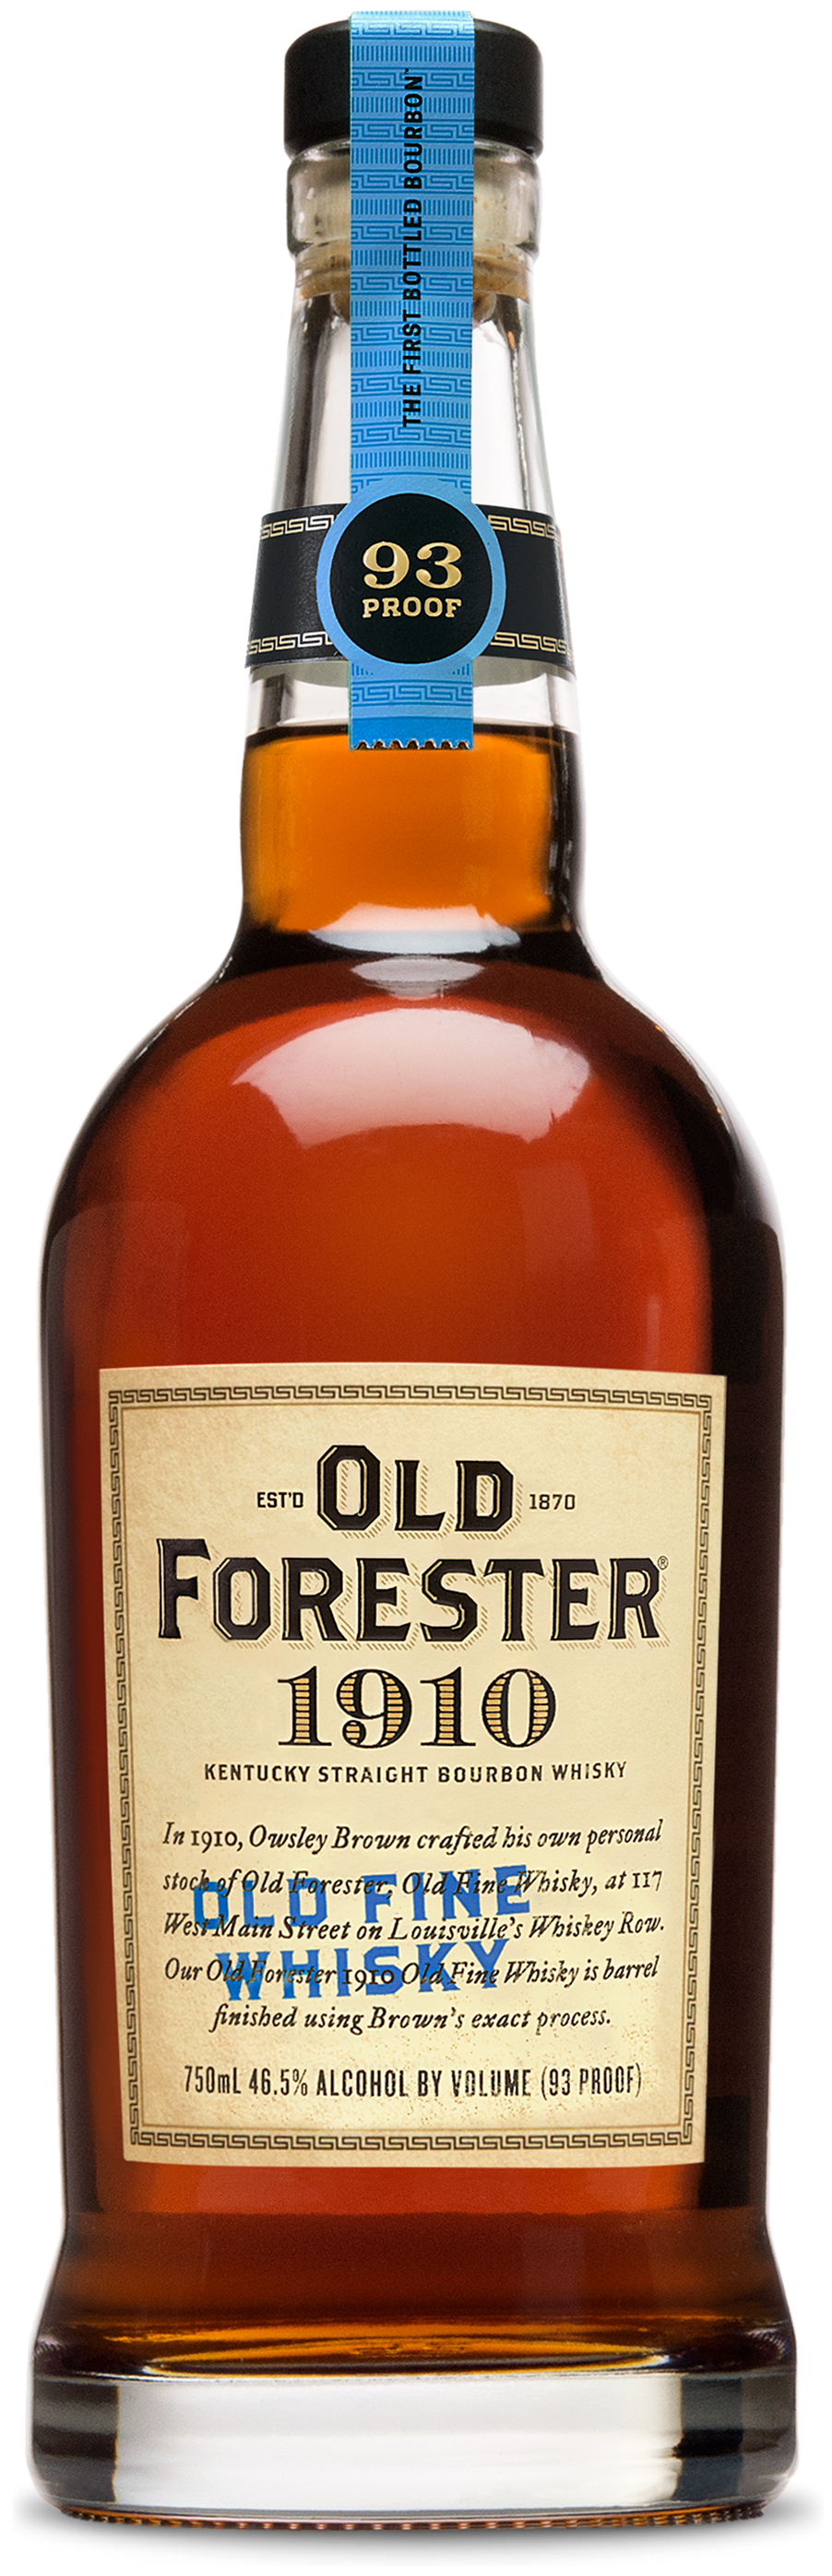 1910 Old Forester Old Fine Whiskey